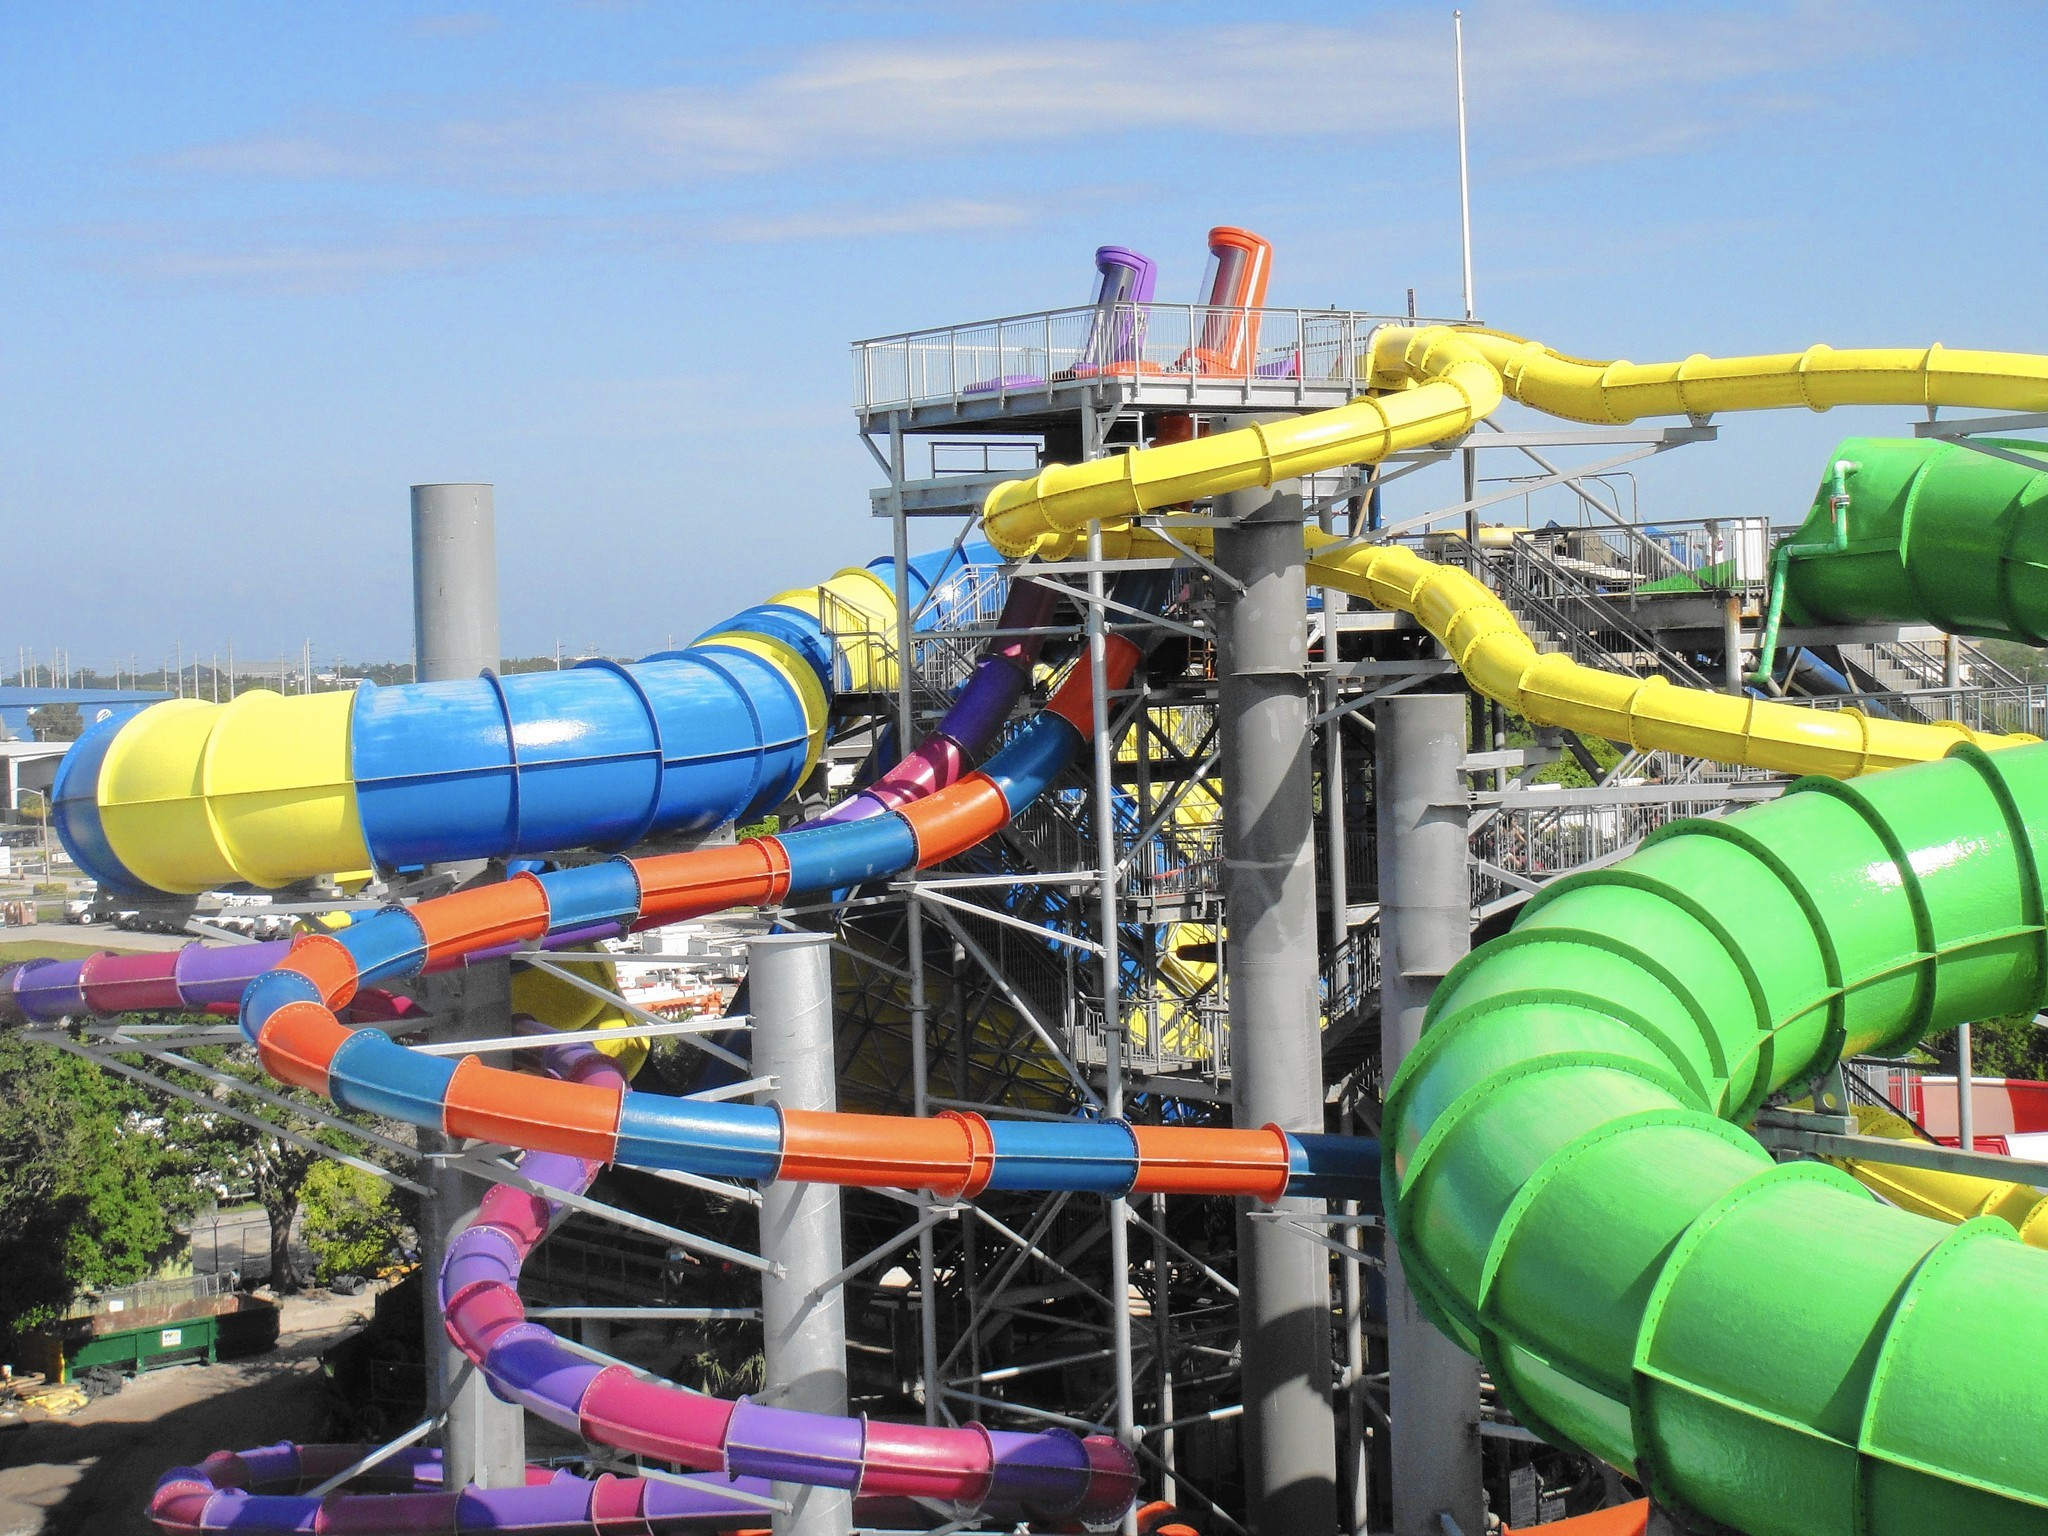 Rapids Waterpark West Palm Beach The Best Beaches In World